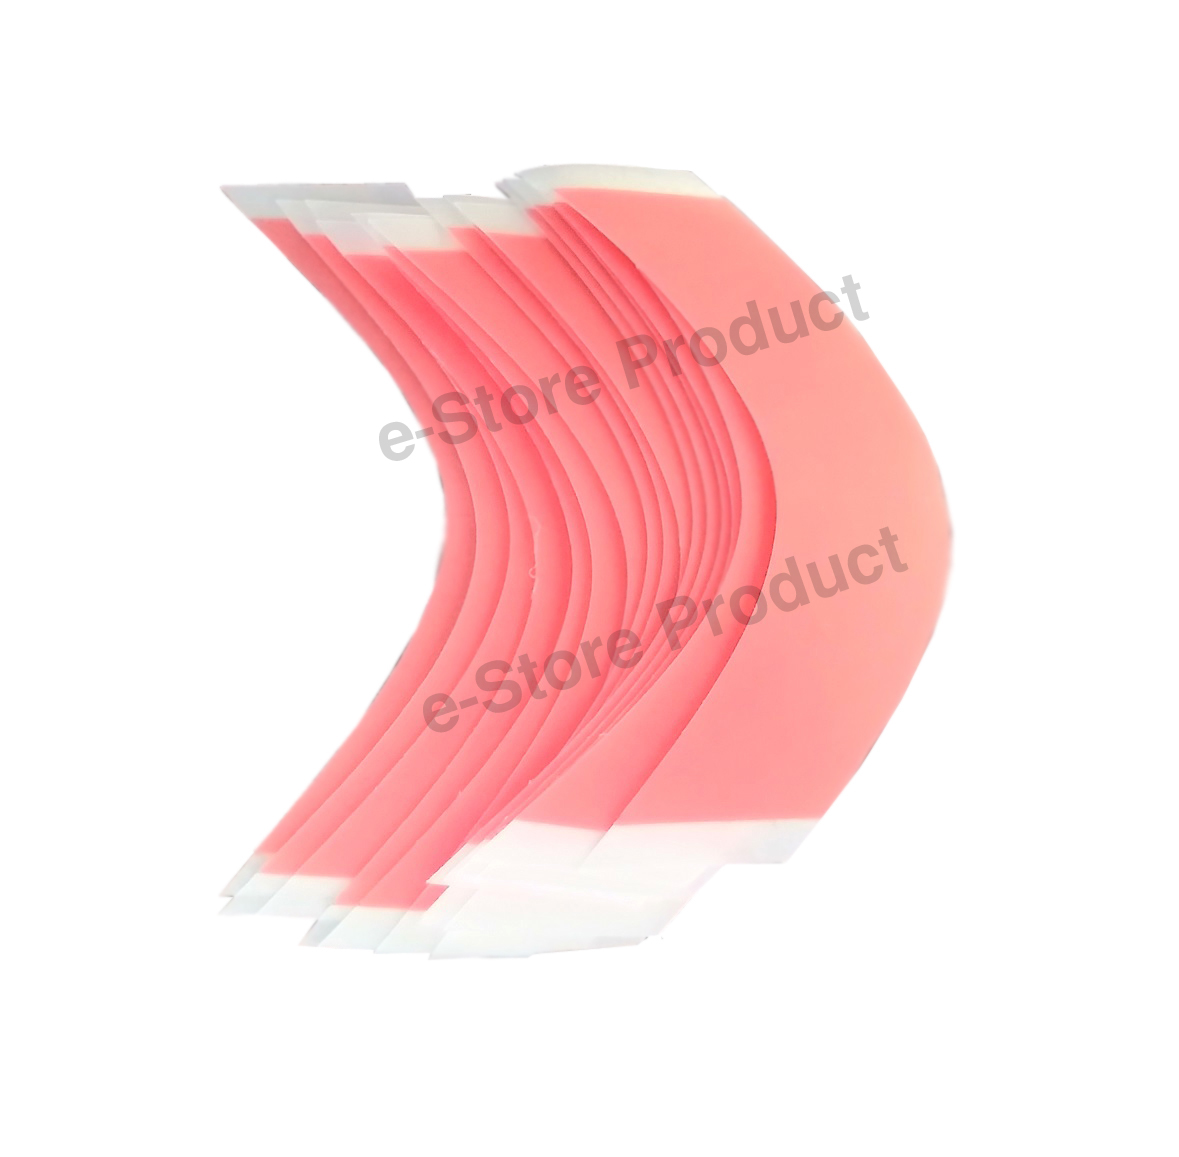 Pack of 25 x Front Lace Wig Unit Super Stick RED Strips - Very Strong Hold Double-sided Adhesive Tape (2 x 8)cm